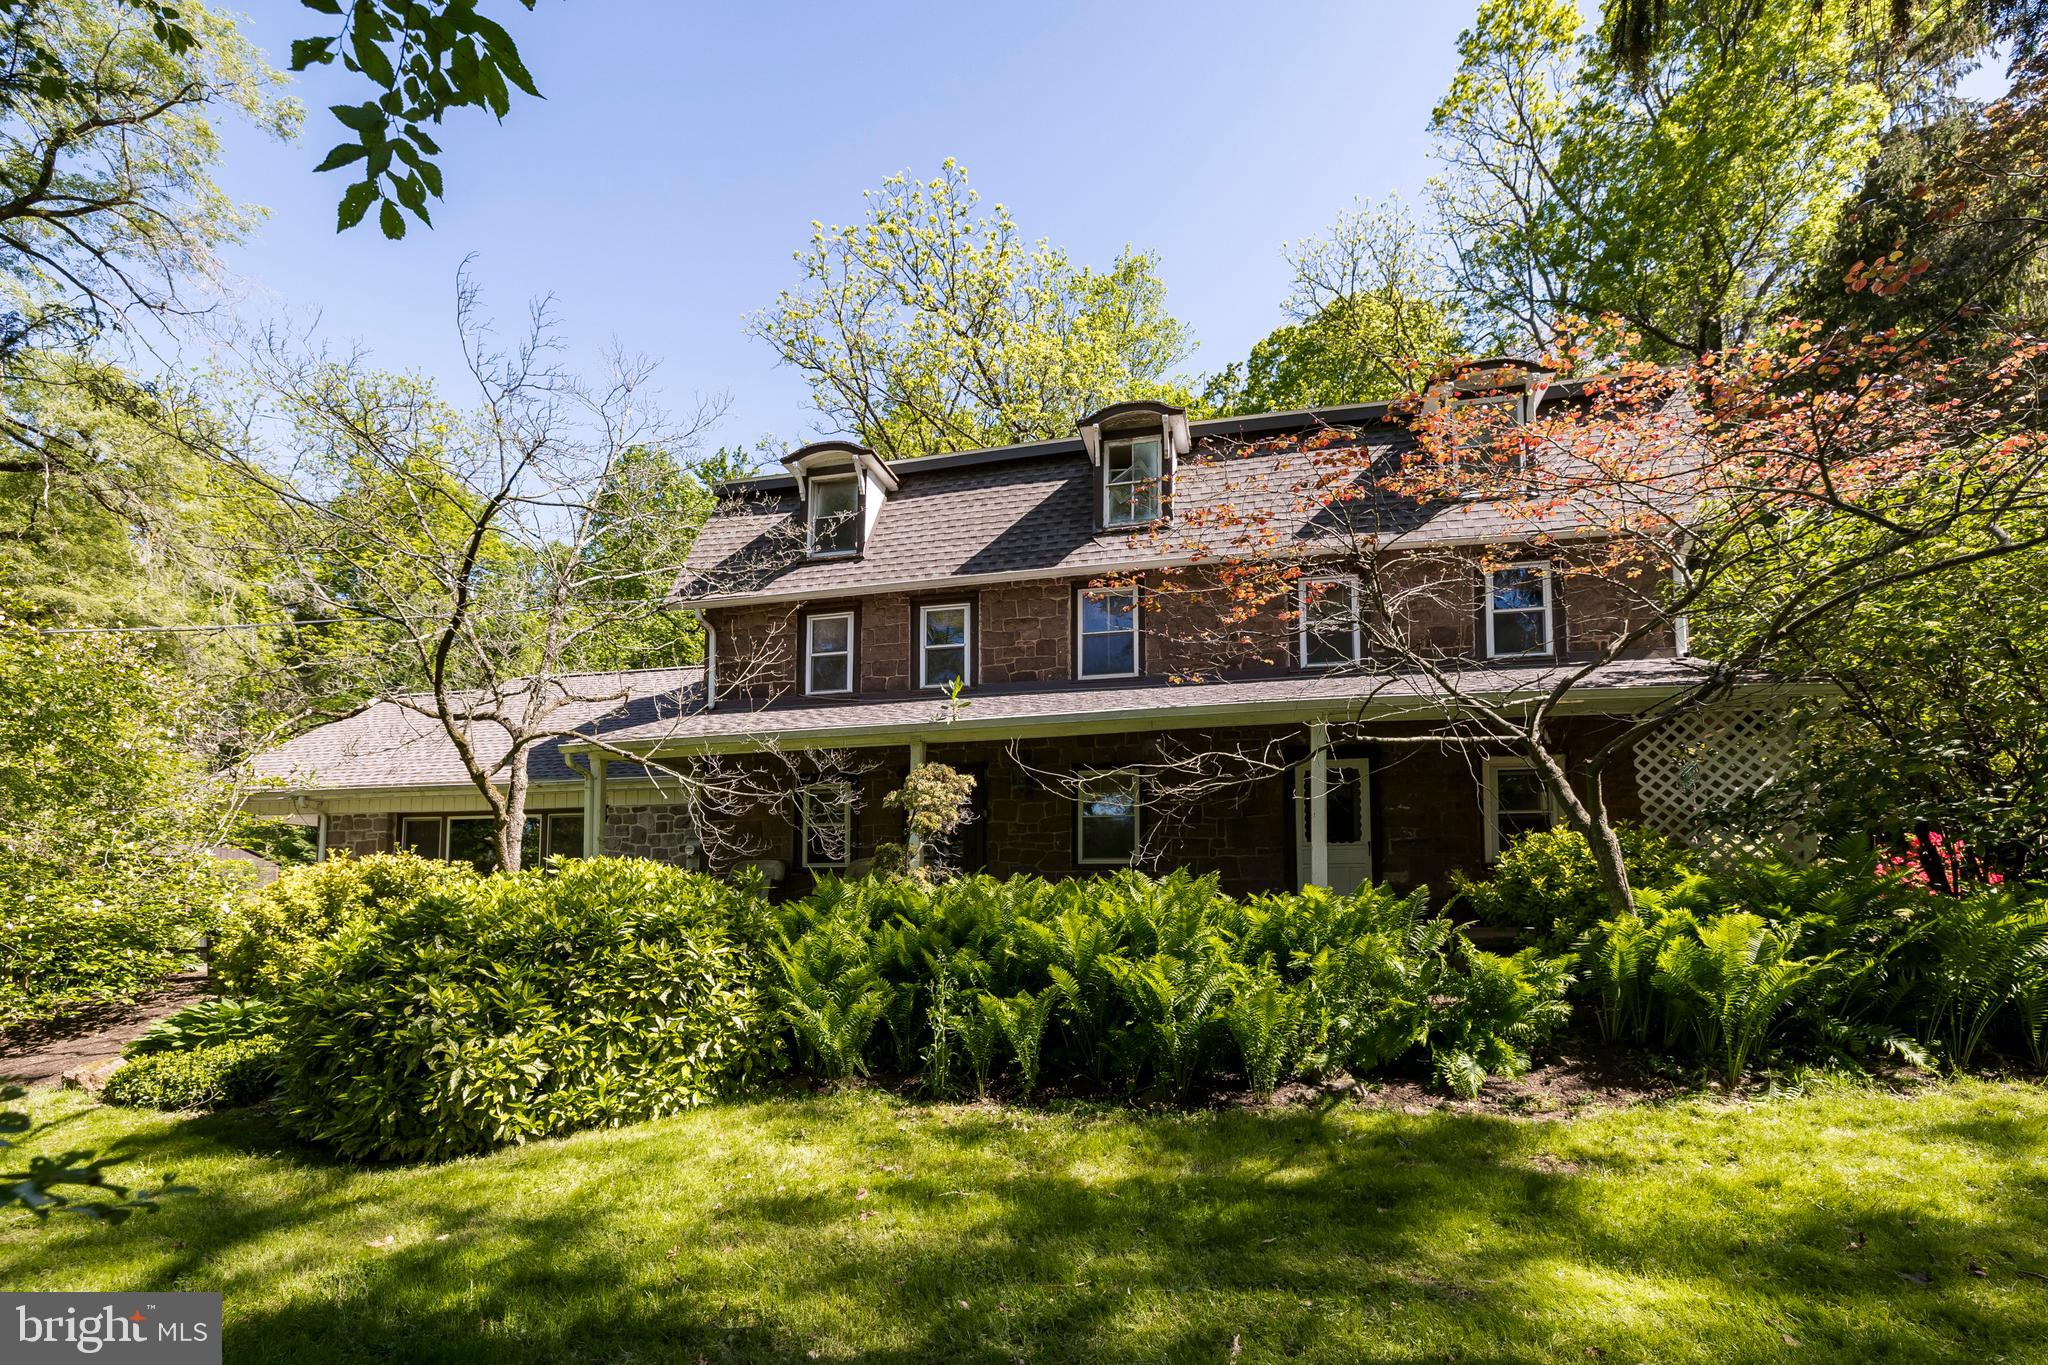 Own a piece of Chester County history! Built in 1758, this gorgeous farmhouse was once part of the local sheep herder's farm. This charming stone home has been expanded over the years, resulting in a very comfortable space that retains much of its original charm including exposed stone walls, beams, and hardwood floors. The main level includes a huge 25x25 family room and Kutz-built addition from the late 1960's, which is an amazing space for entertaining and was once the recital room for a local piano teacher! There is also a convenient powder room and coat closet. A large hallway of built-in cabinetry connects the addition to the original portion of the home, which could be used as a large formal dining room or multipurpose room. You can't help but fall in love with the deep windowsills and the exposed beams! Imagine all of the owners that have lived here... before the roads were cut in, before plumbing... even the current fireplace with wood stove insert used to be a walk-in fireplace. Just off the dining room is the kitchen, which is part of an addition from 1768. The kitchen has ceramic tile floors, butcher block island, and access to the huge private front porch! There is also a stairwell that leads to the 2nd floor where you will find two rooms that share a full bath. The 3rd floor has three additional rooms with original flooring. Outside you can enjoy almost 1.6 acres of wooded privacy, with plenty of room for outdoor activities and gardening. There is a large shed and plenty of parking for party-time! The home has a new roof (2019), newer heater and water heater (2018), replacement windows, replacement oil tank (2014), updated 200AMP electric, and public sewer. All you need is your creative vision to transform this house into your dream home! Come and write yourself into the next chapter of Chester County history!